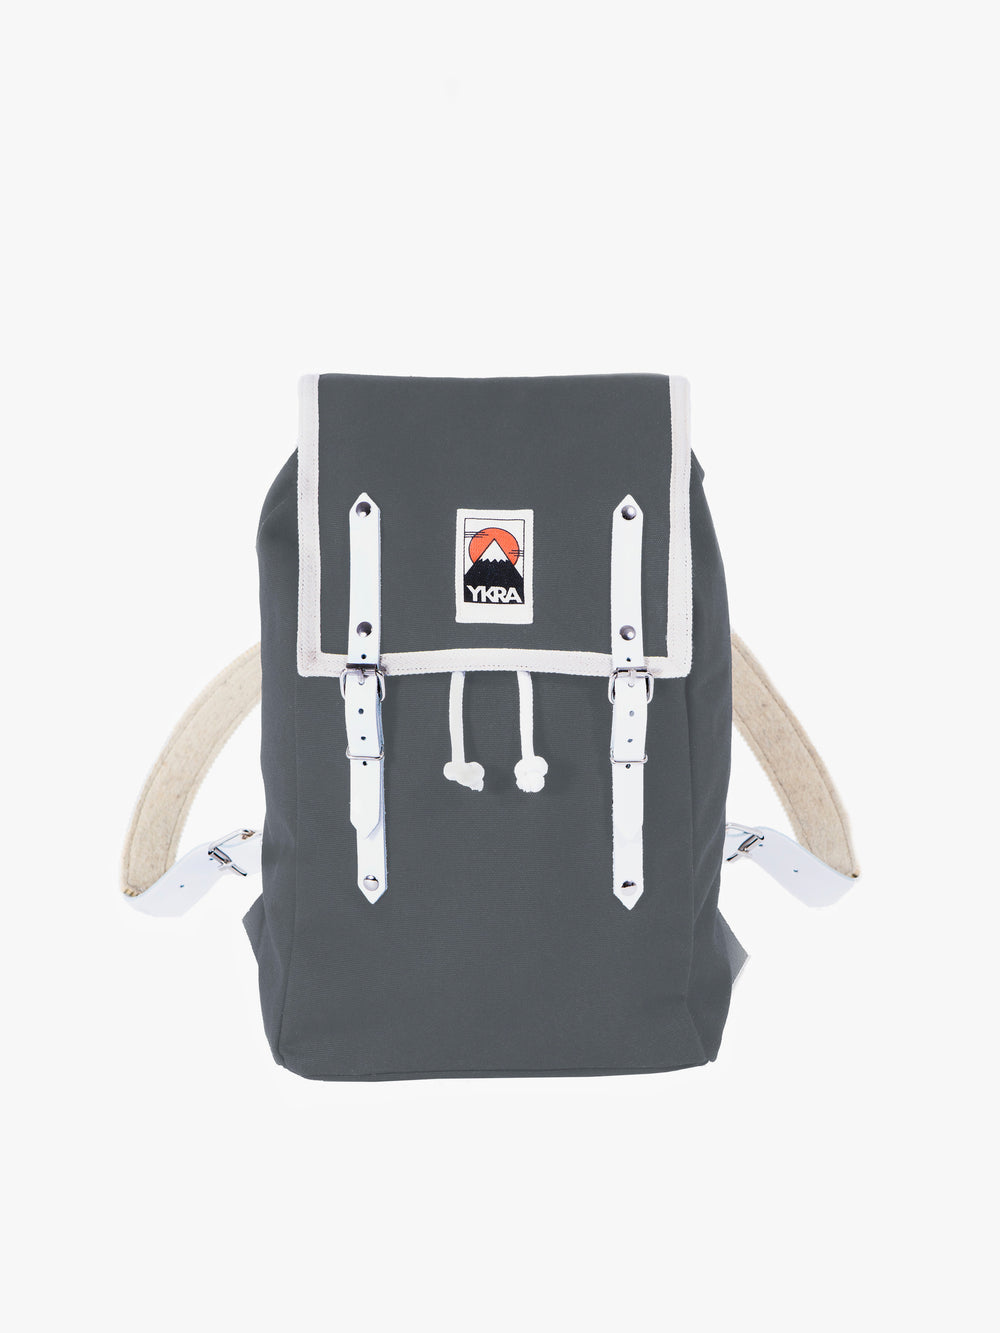 YKRA backpack with white leather straps. Designed and handcrafted in Budapest.